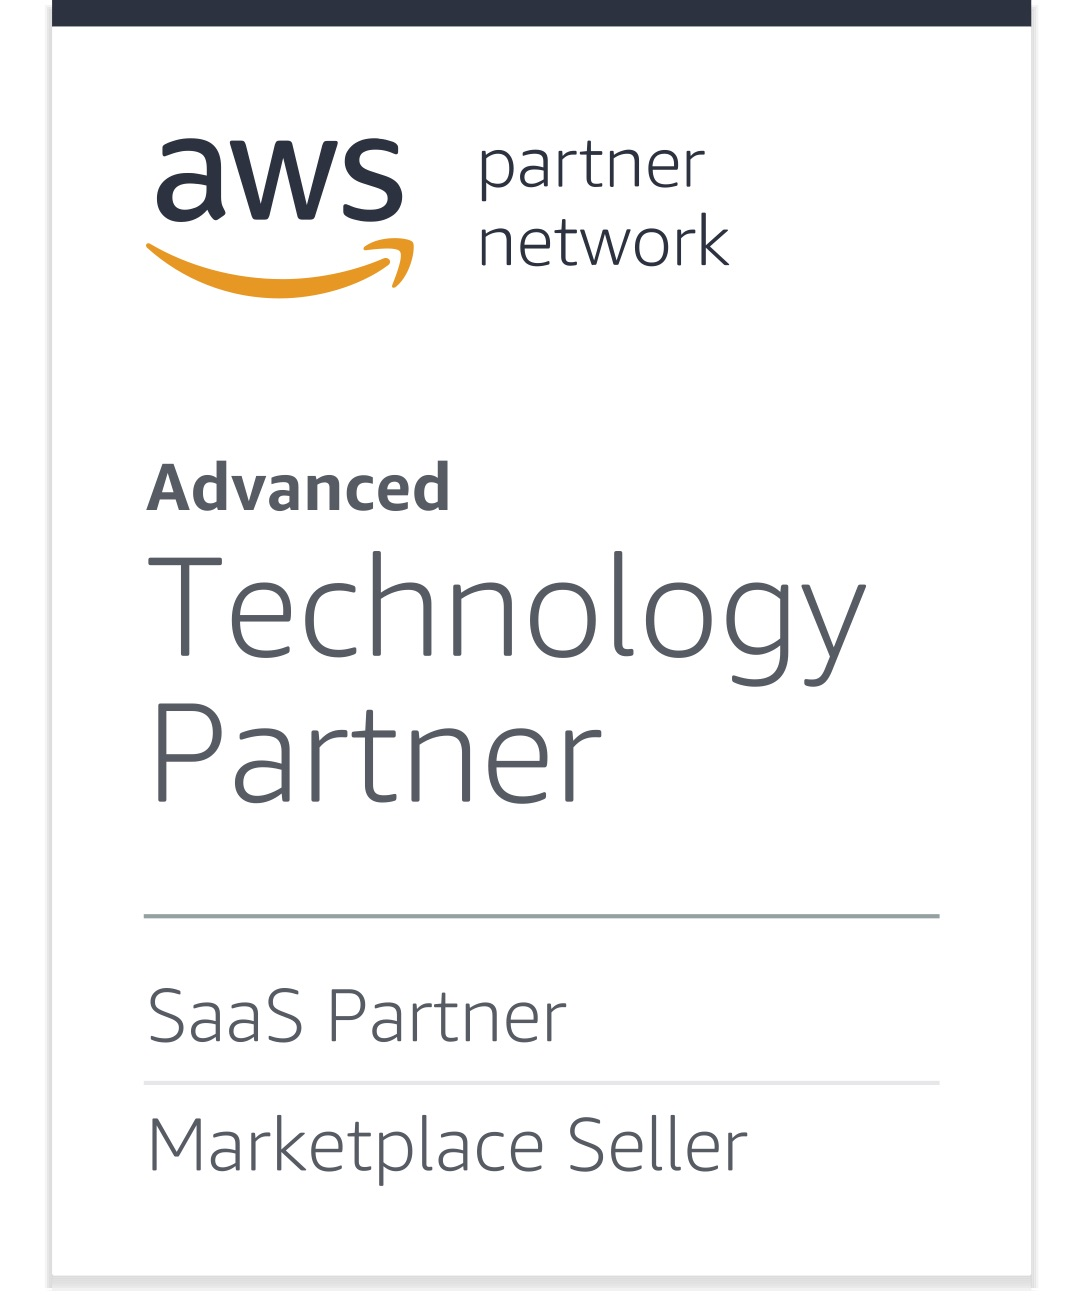 RedLine13 Partners - AWS Advanced Technology Partner